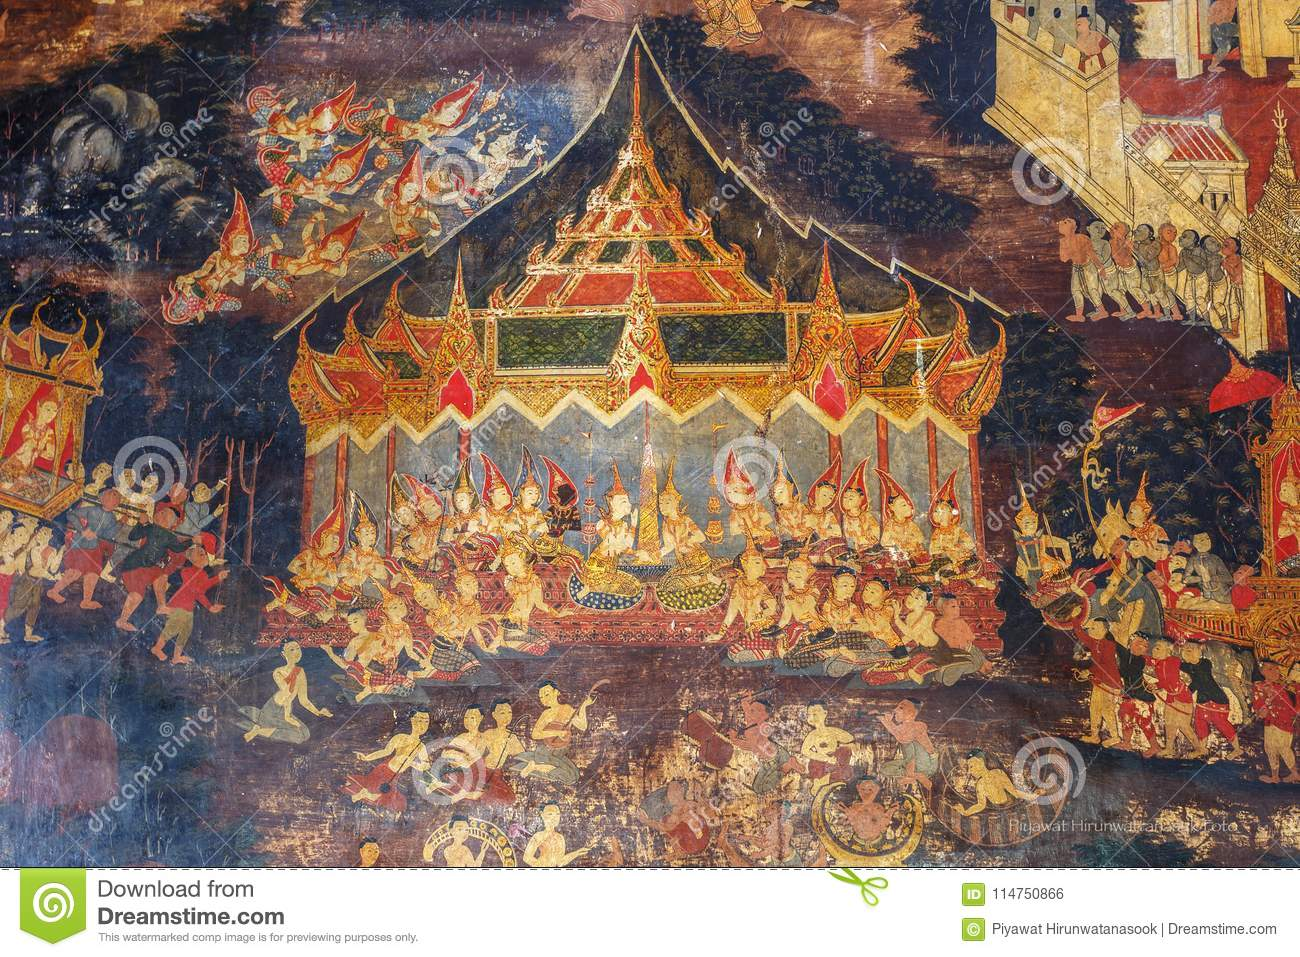 Historical place, Wat Ubosatharam. The temple houses many artifacts such as wall murals representing the style of early Rattanakos